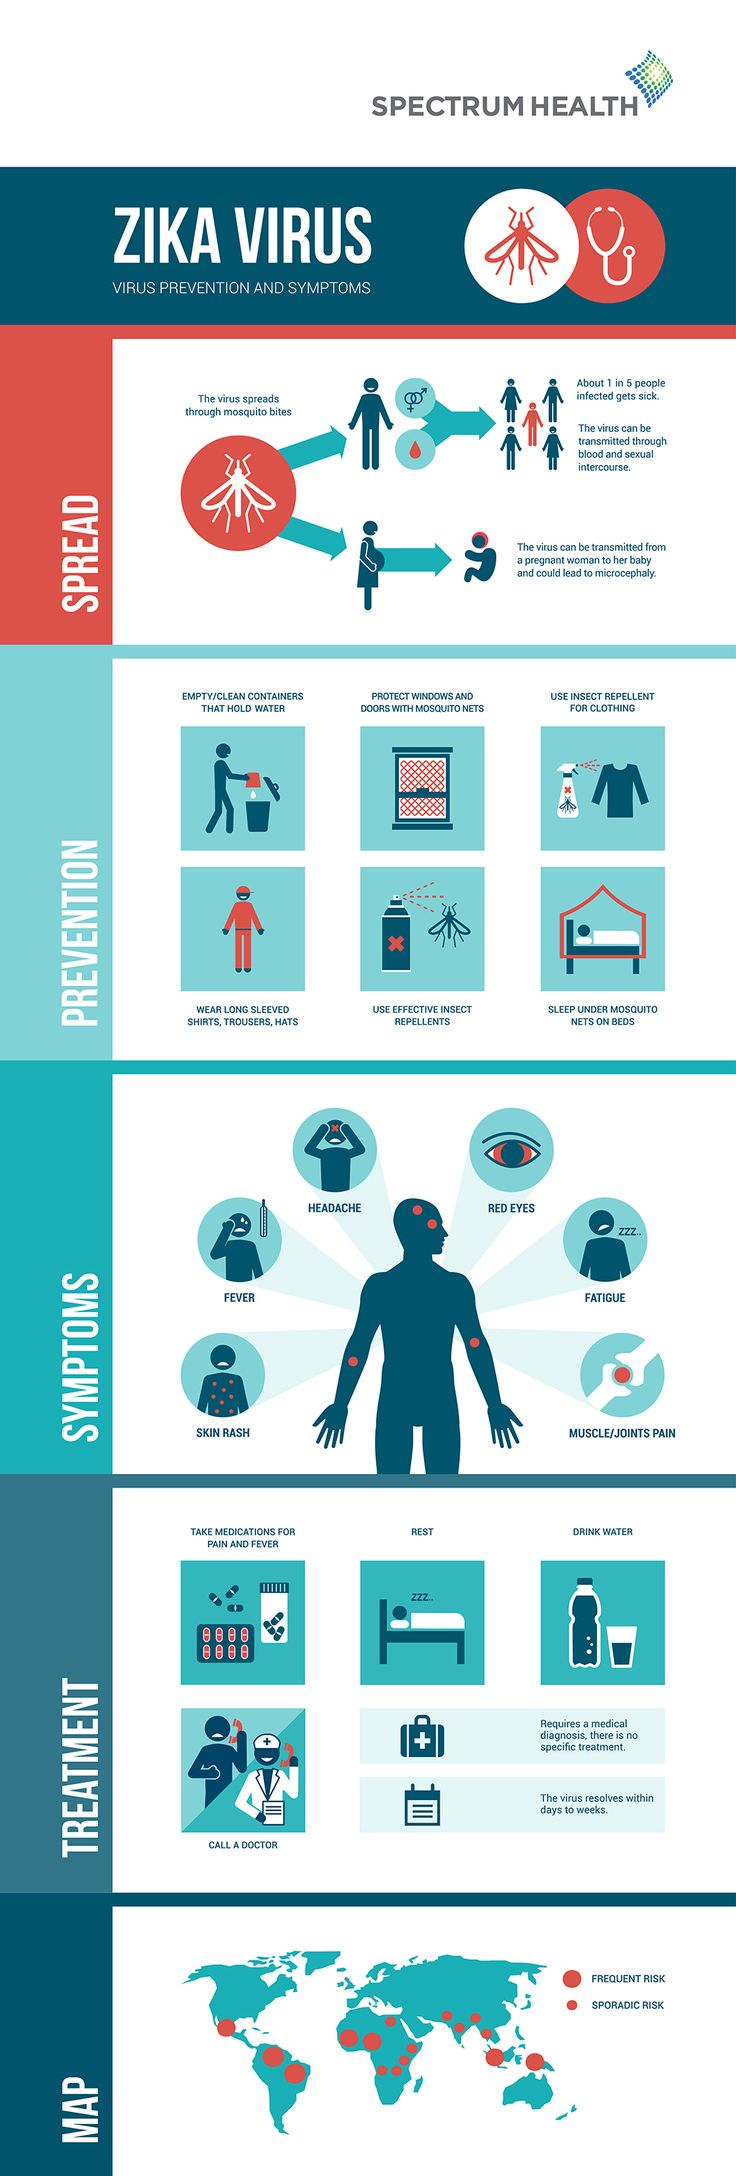 http://healthbeat.spectrumhealth.org/infographics/zika-virus-prevention-and-symptoms/